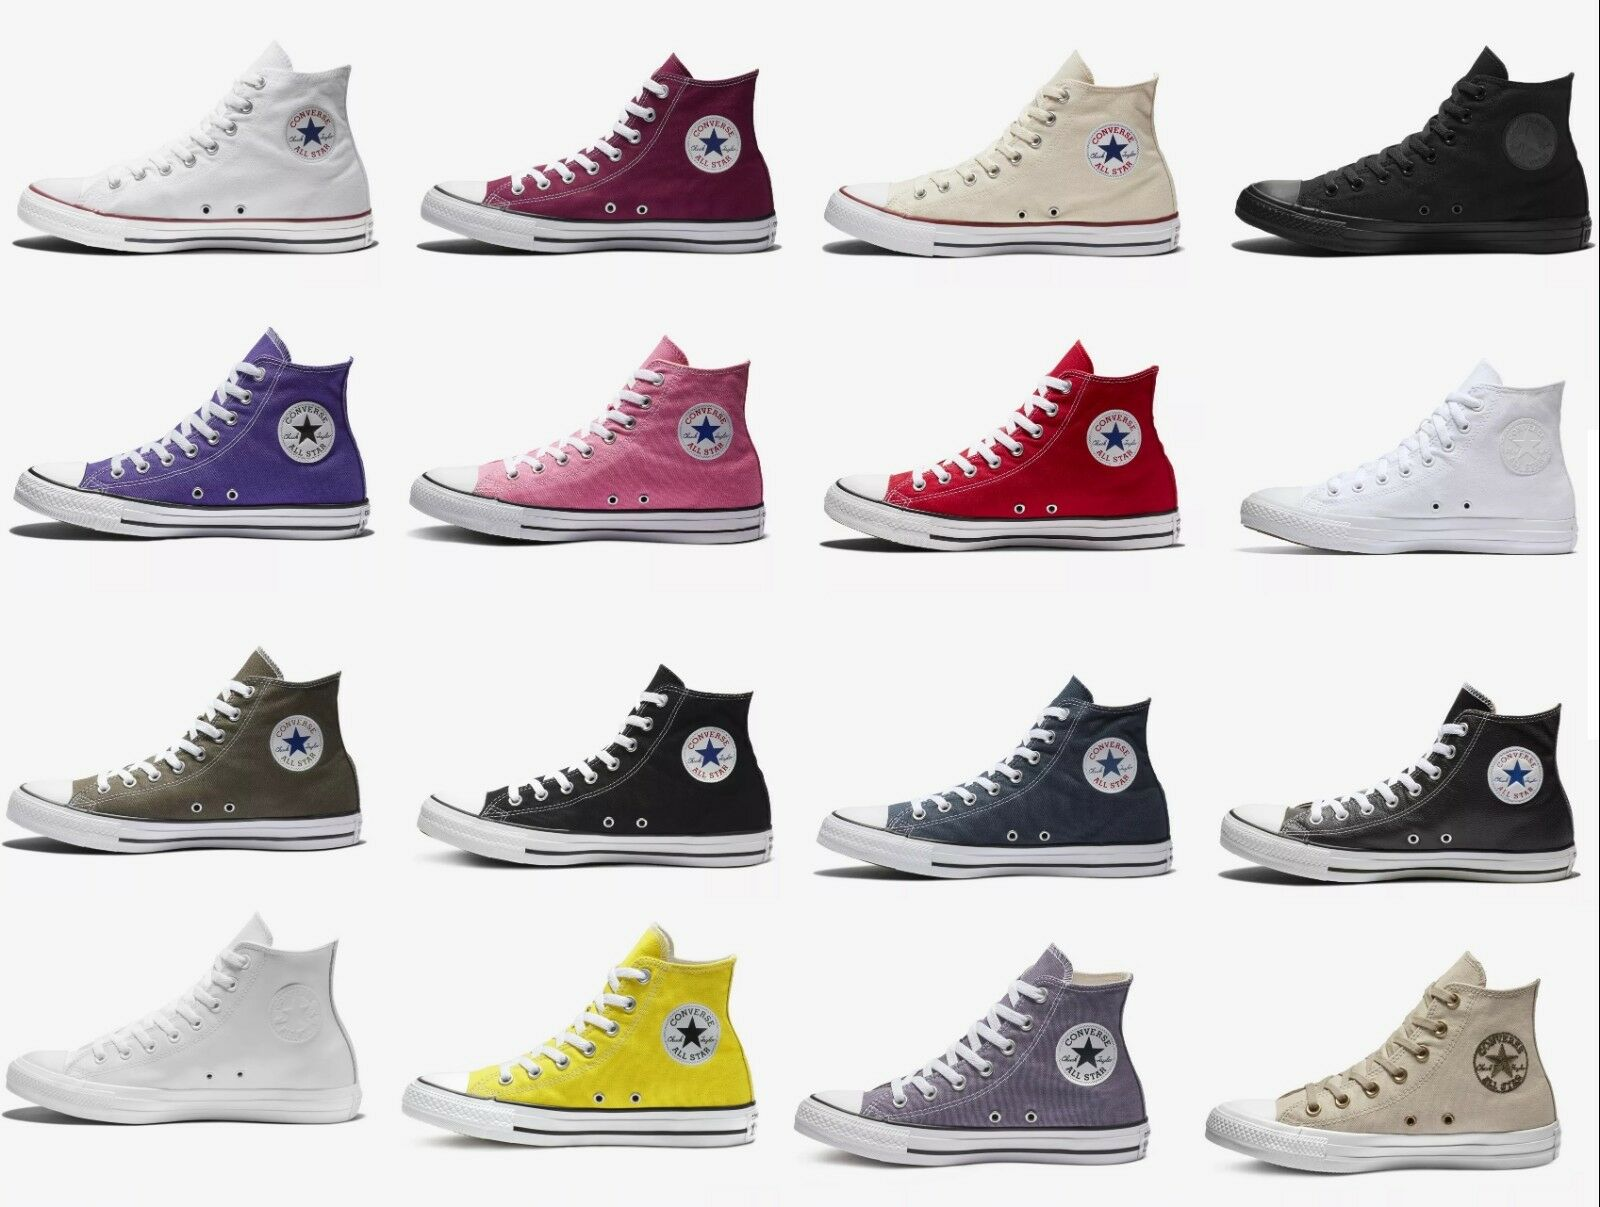 9f9e0743adfb Пара мужских высоких кроссовок NEW Converse Chuck Taylor All Star High Top  Canvas Casual Sneakers Unisex Shoes